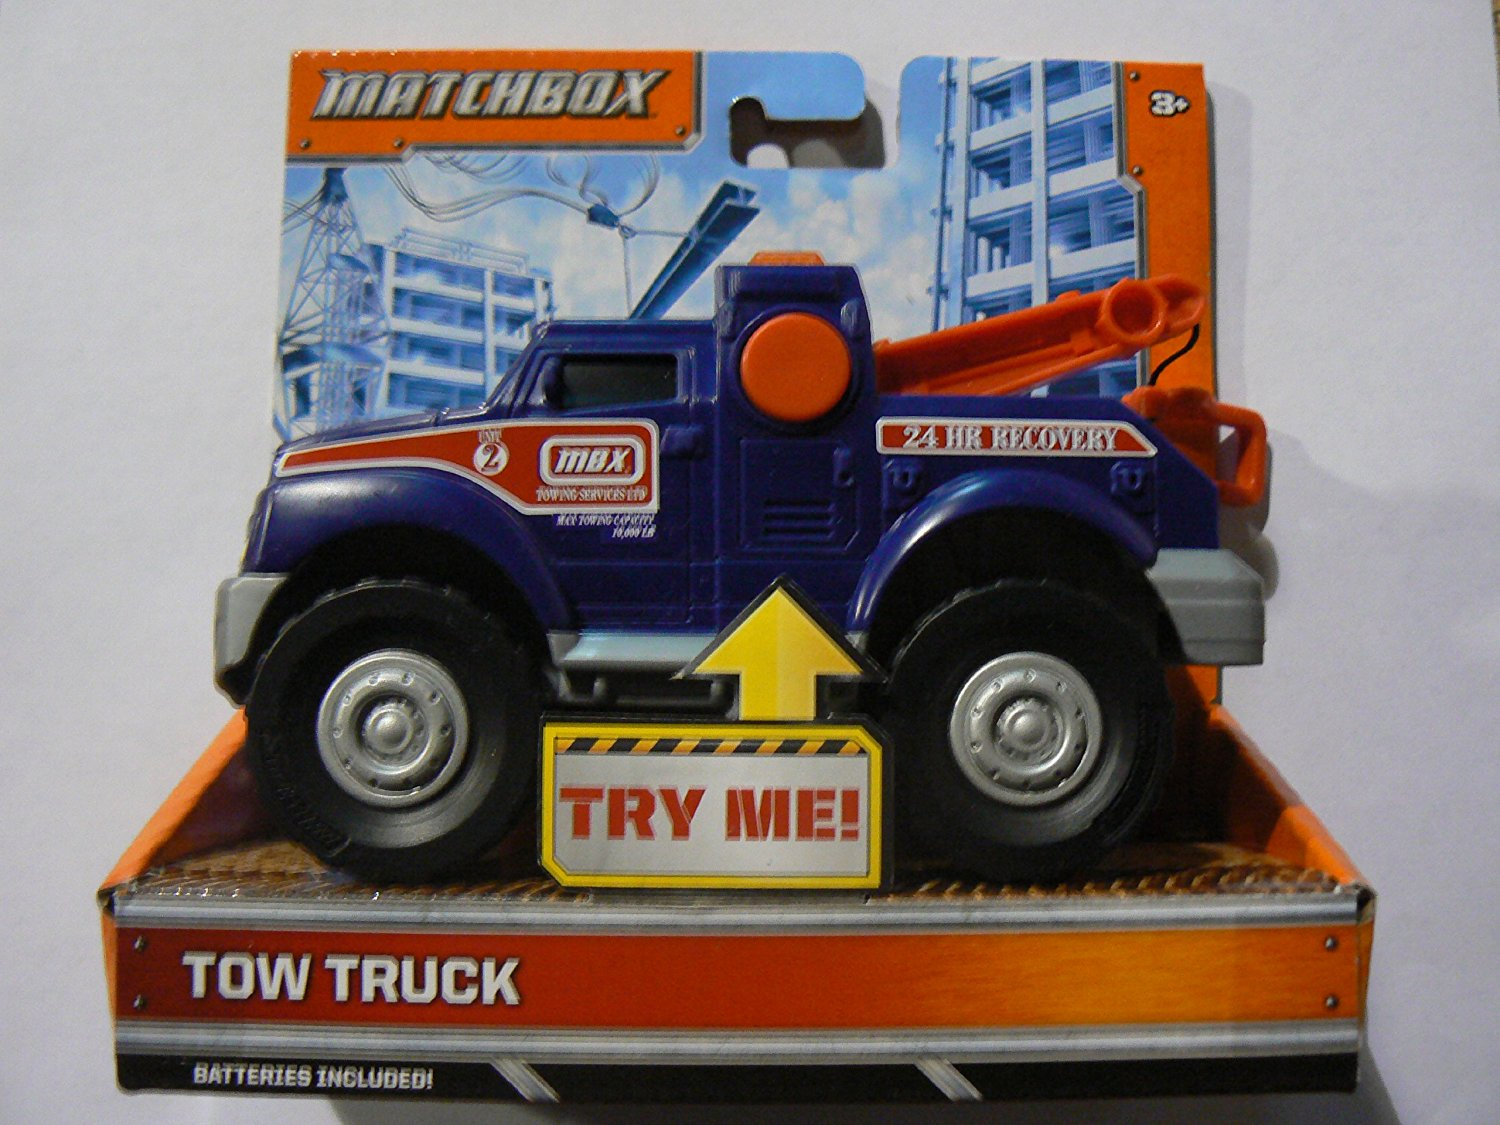 Lights and Sounds Tow Truck, TOW TRUCK Matchbox * LIGHTS & SOUNDS * Vehicle By Matchbox Ship from US by